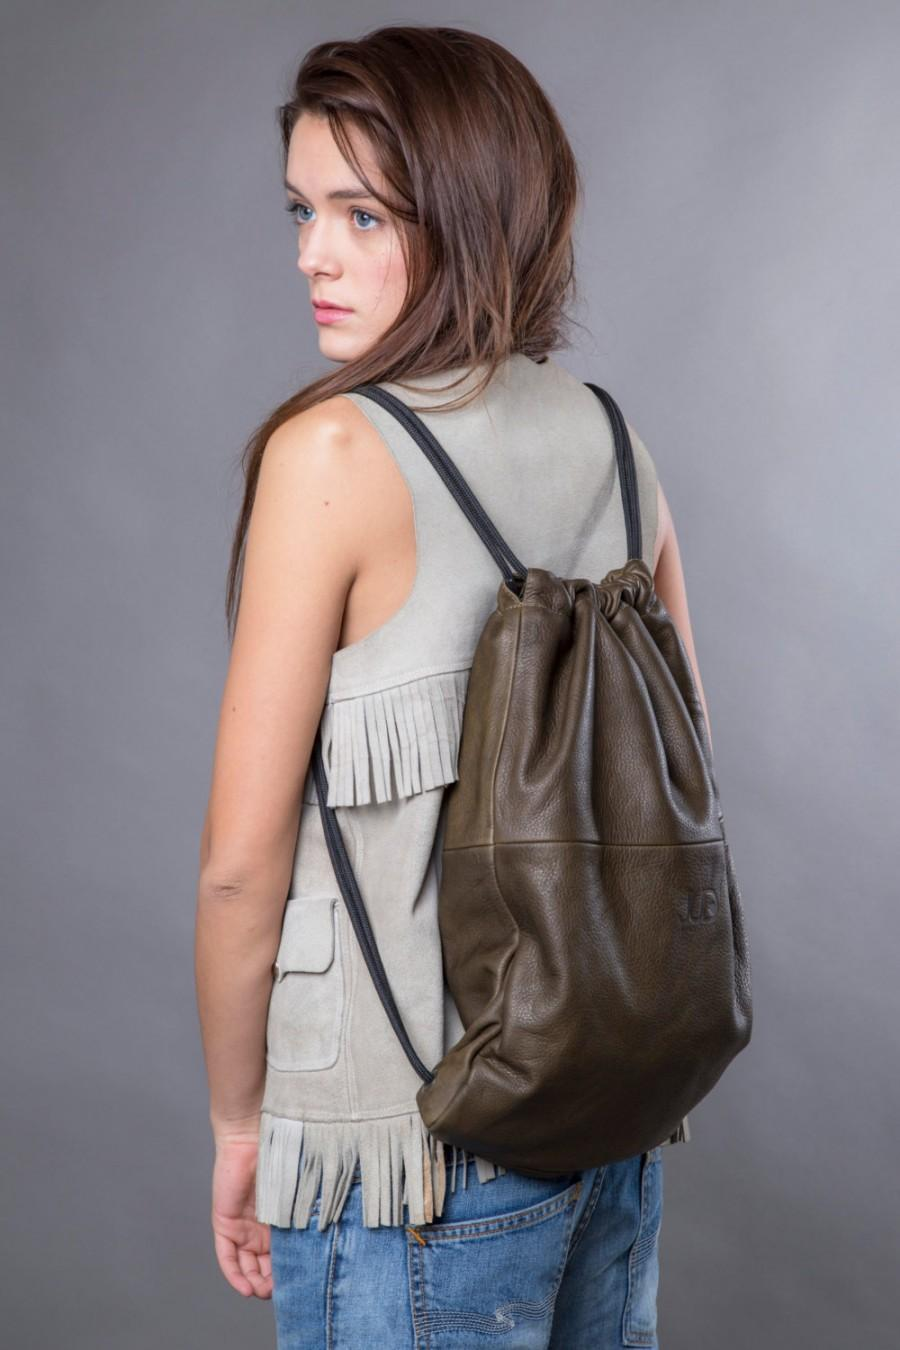 Backpack Olive green leather backpack purse SALE multi leather back bag  women leather handbag cinch sack leather tote drawstring back pack 516e1c736